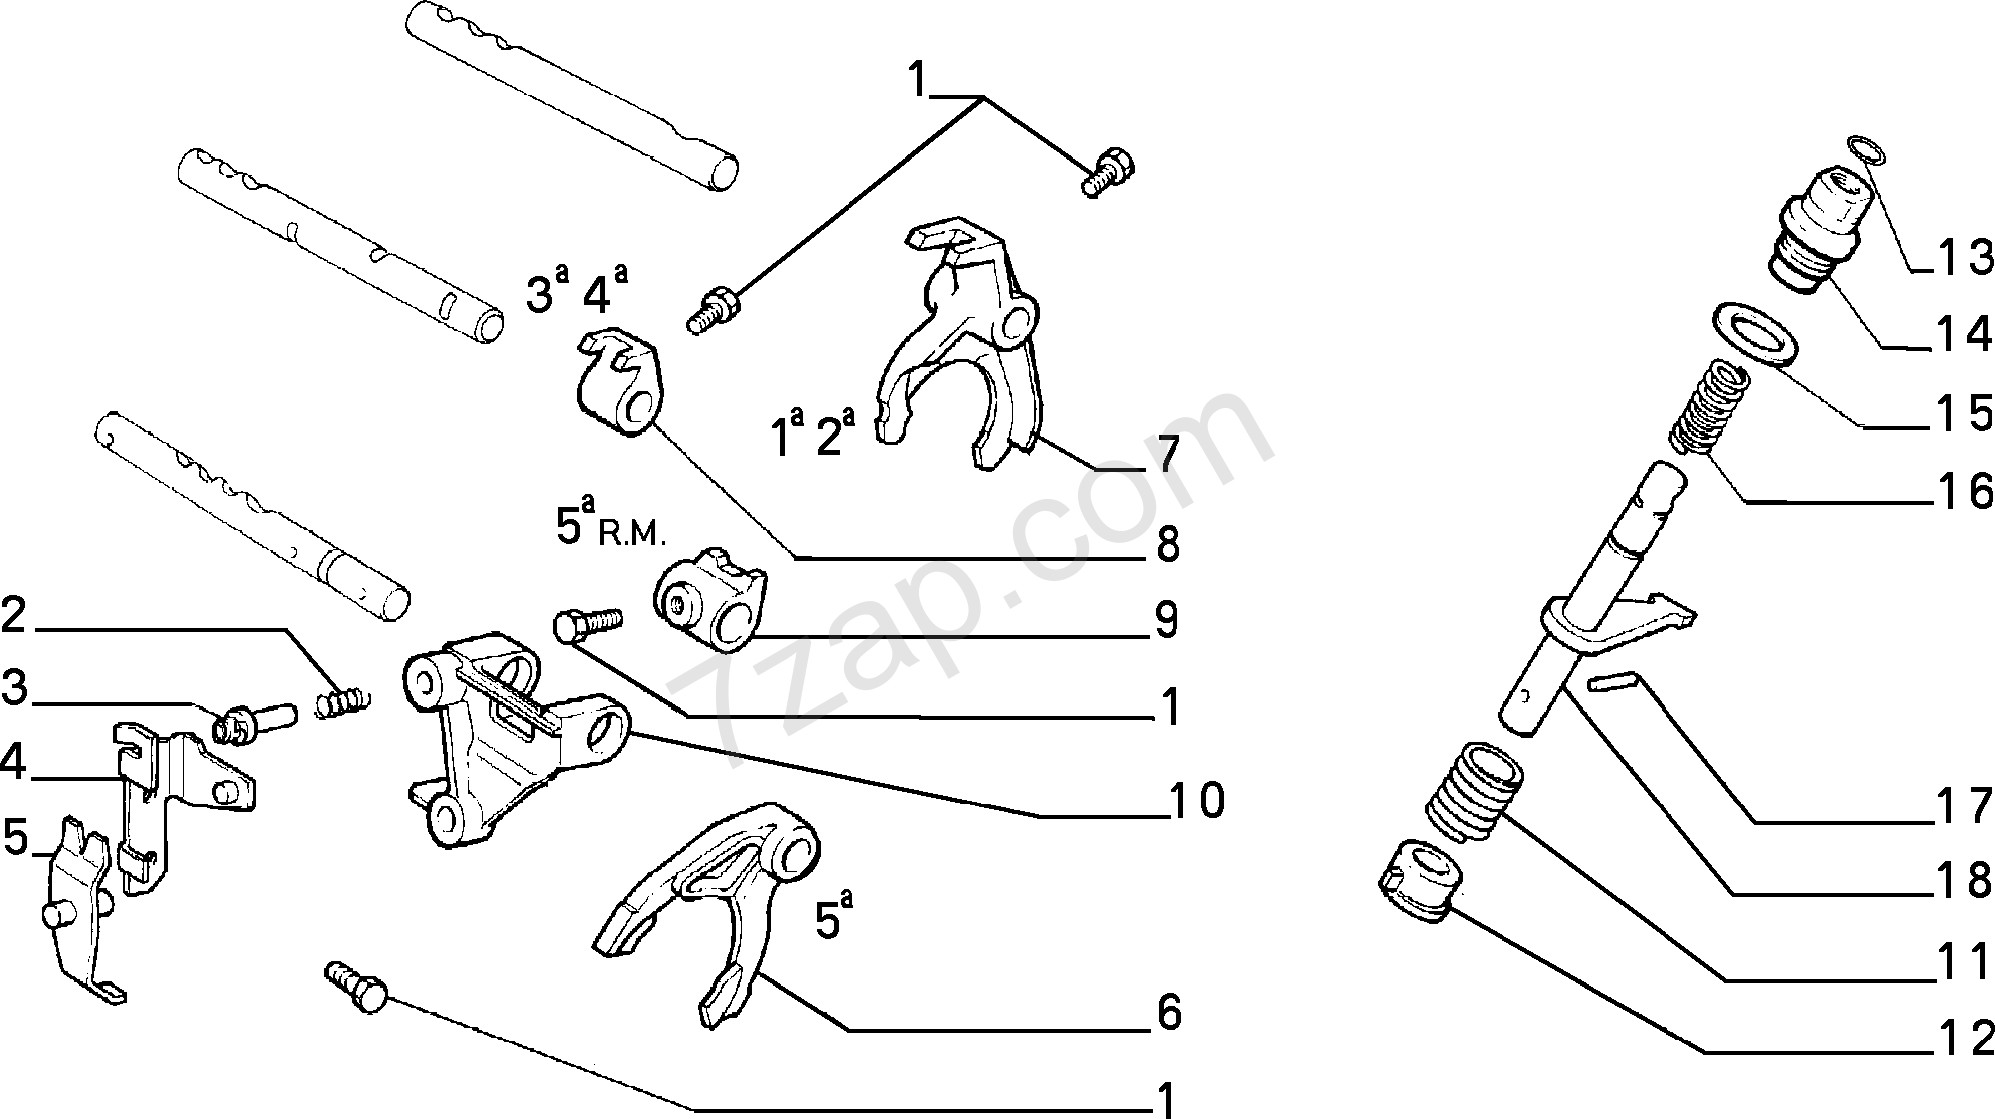 Diagram Of A Transmission Transmission Inner Controls Fiat Pro Nuovo Ducato Bz R 90 1990 1994 Of Diagram Of A Transmission